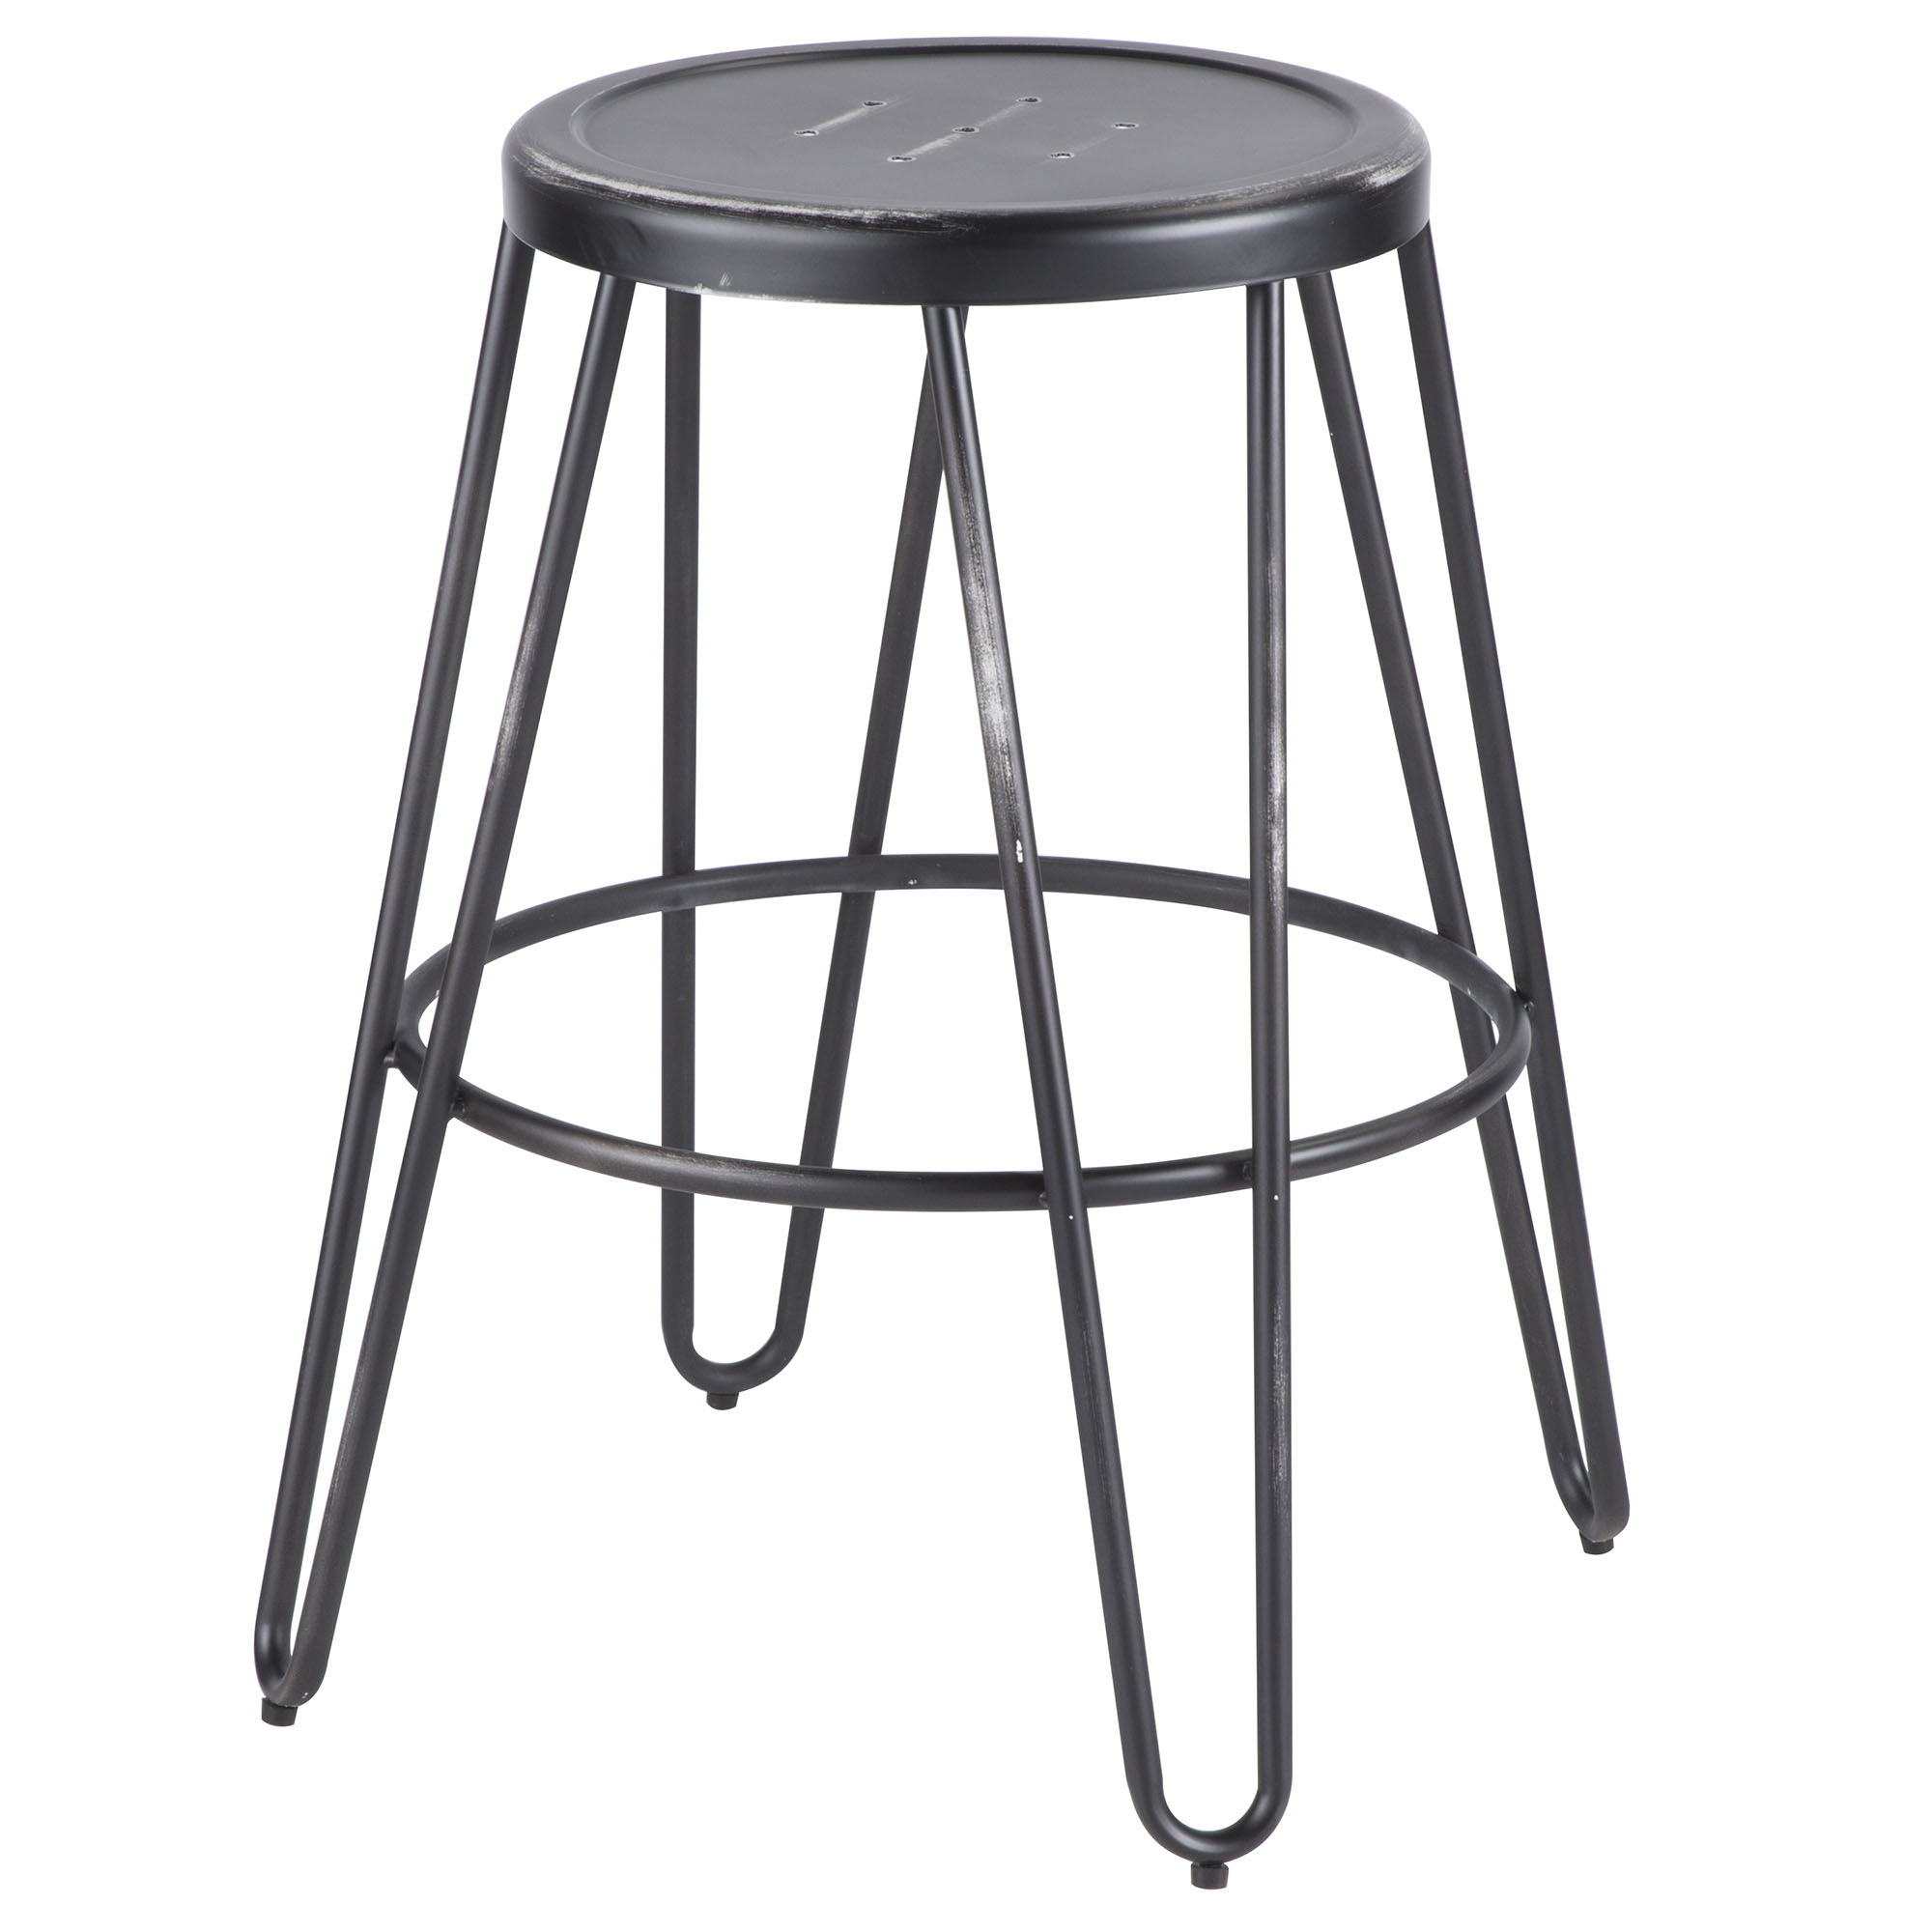 Avery Industrial Metal Counter Stool in Vintage Black by Lumisource Set of 2 by LumiSource